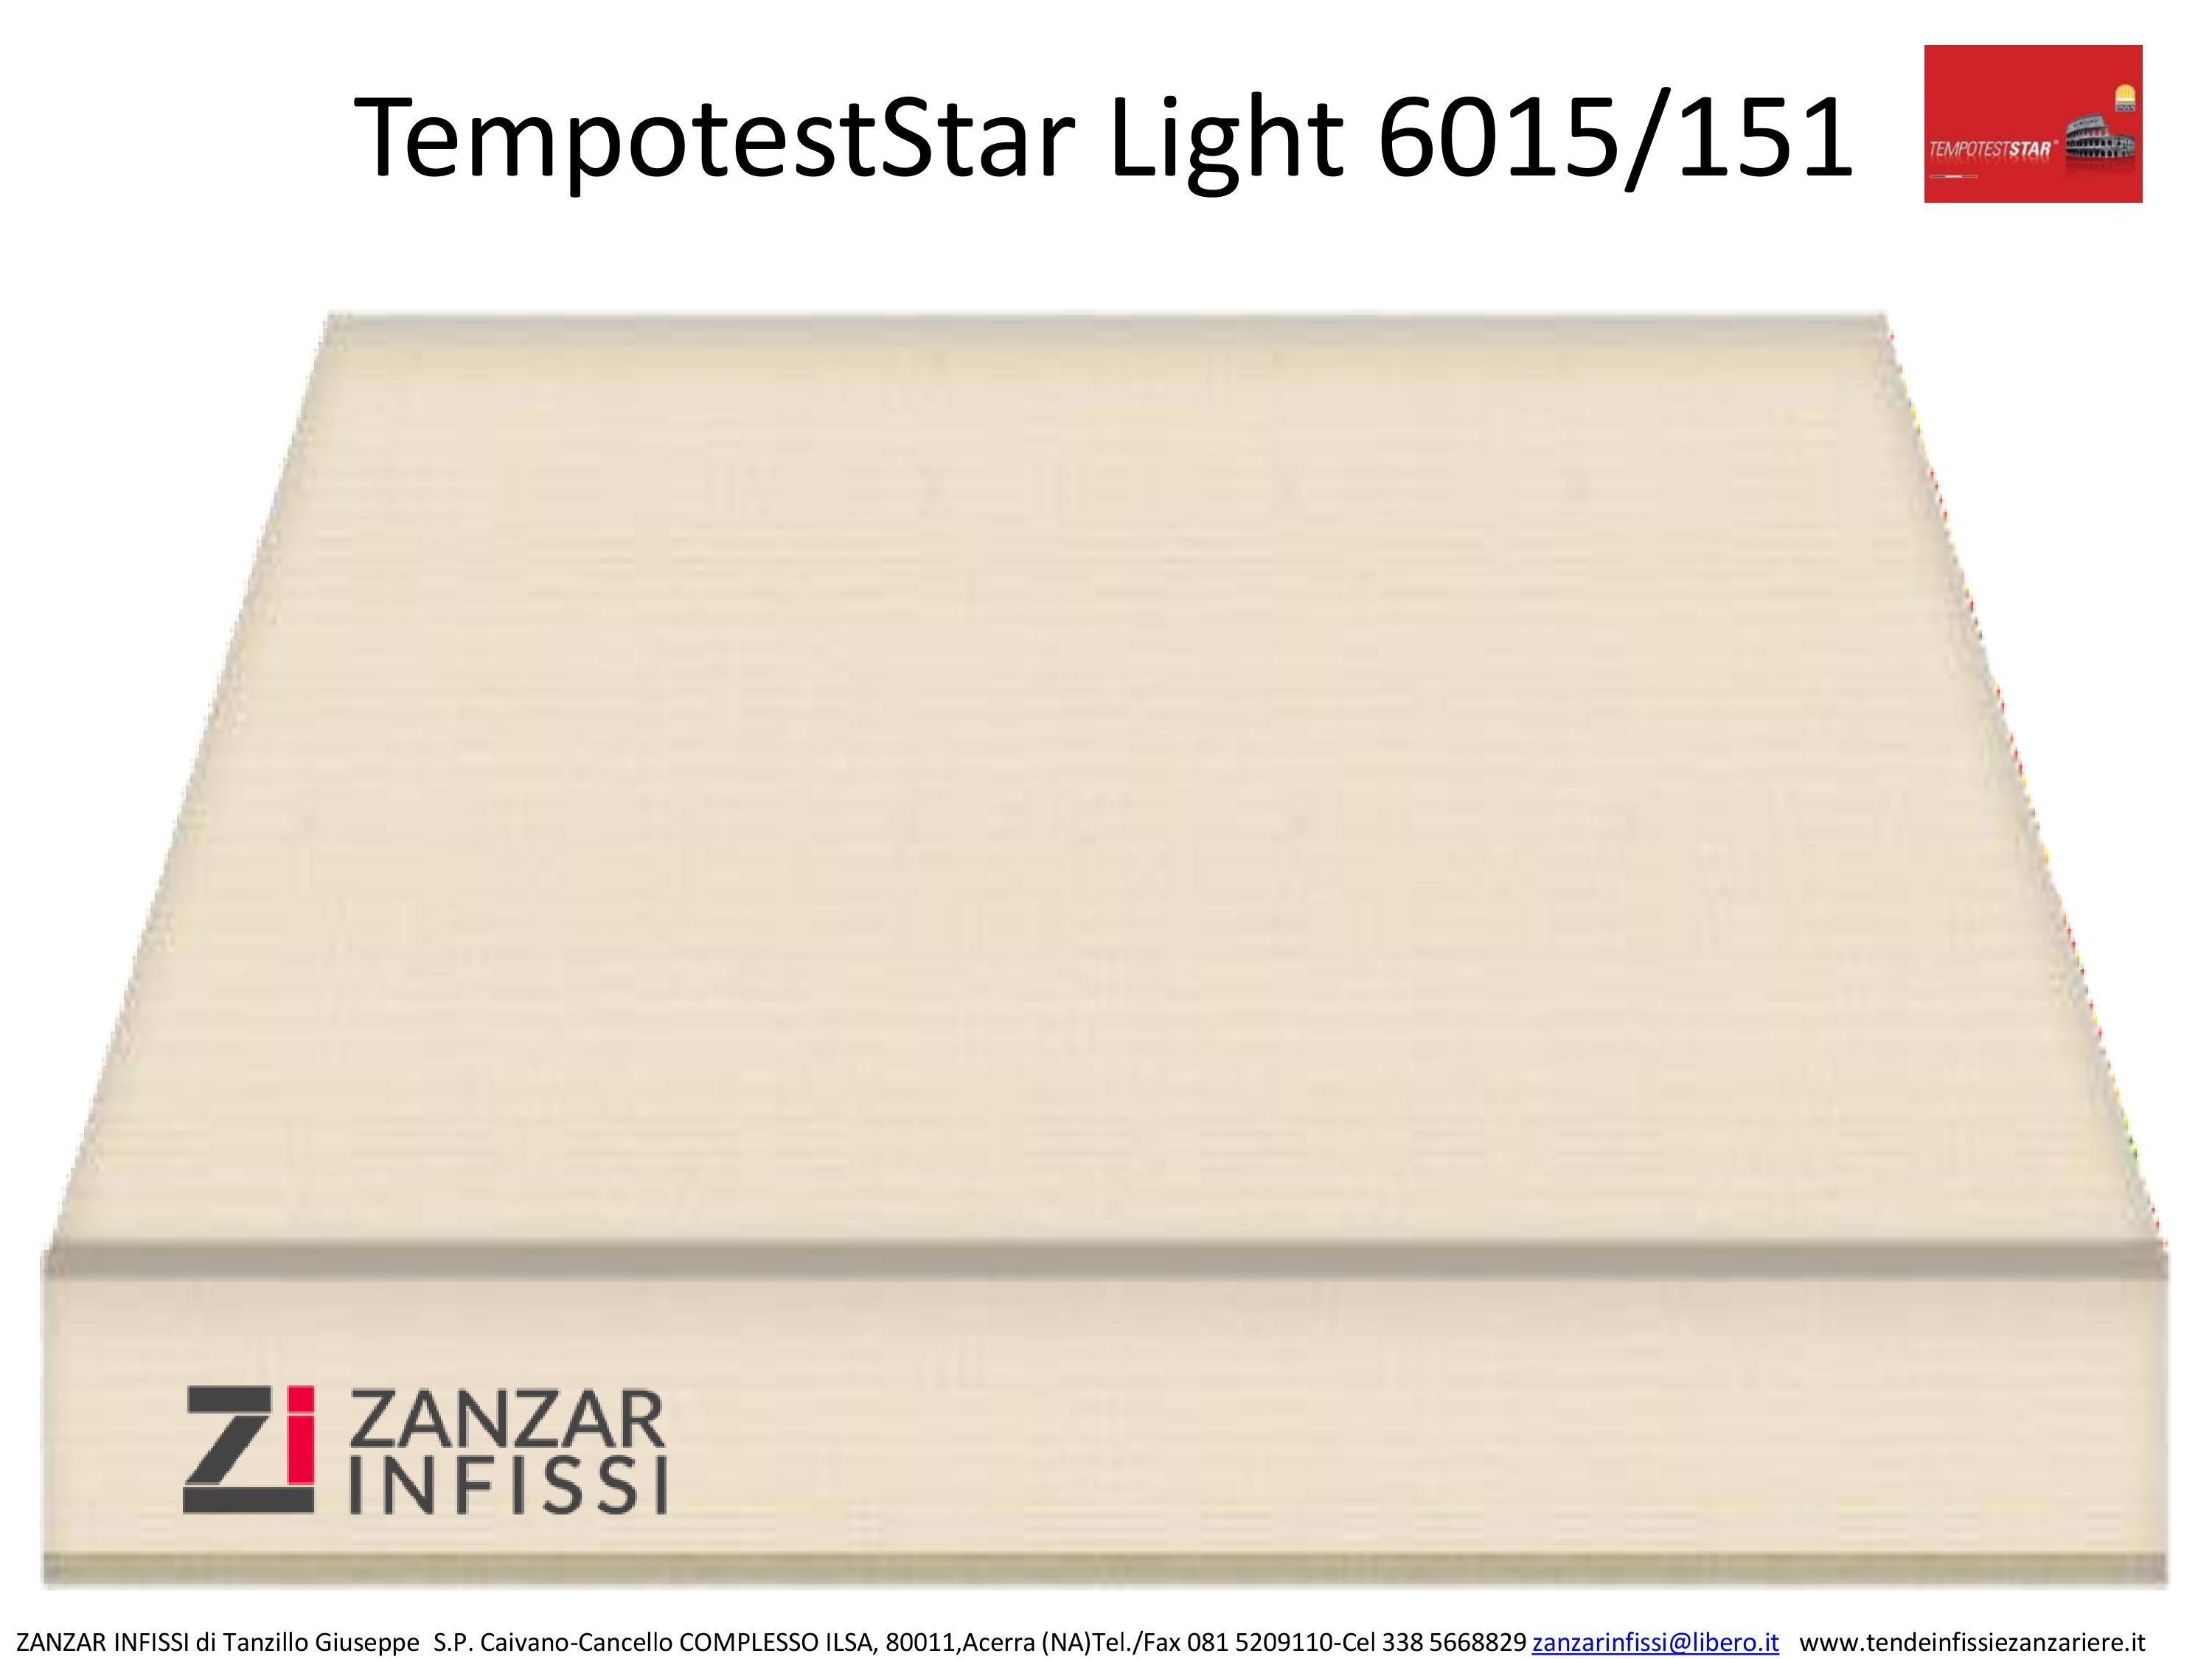 Tempotest star light 6015/151